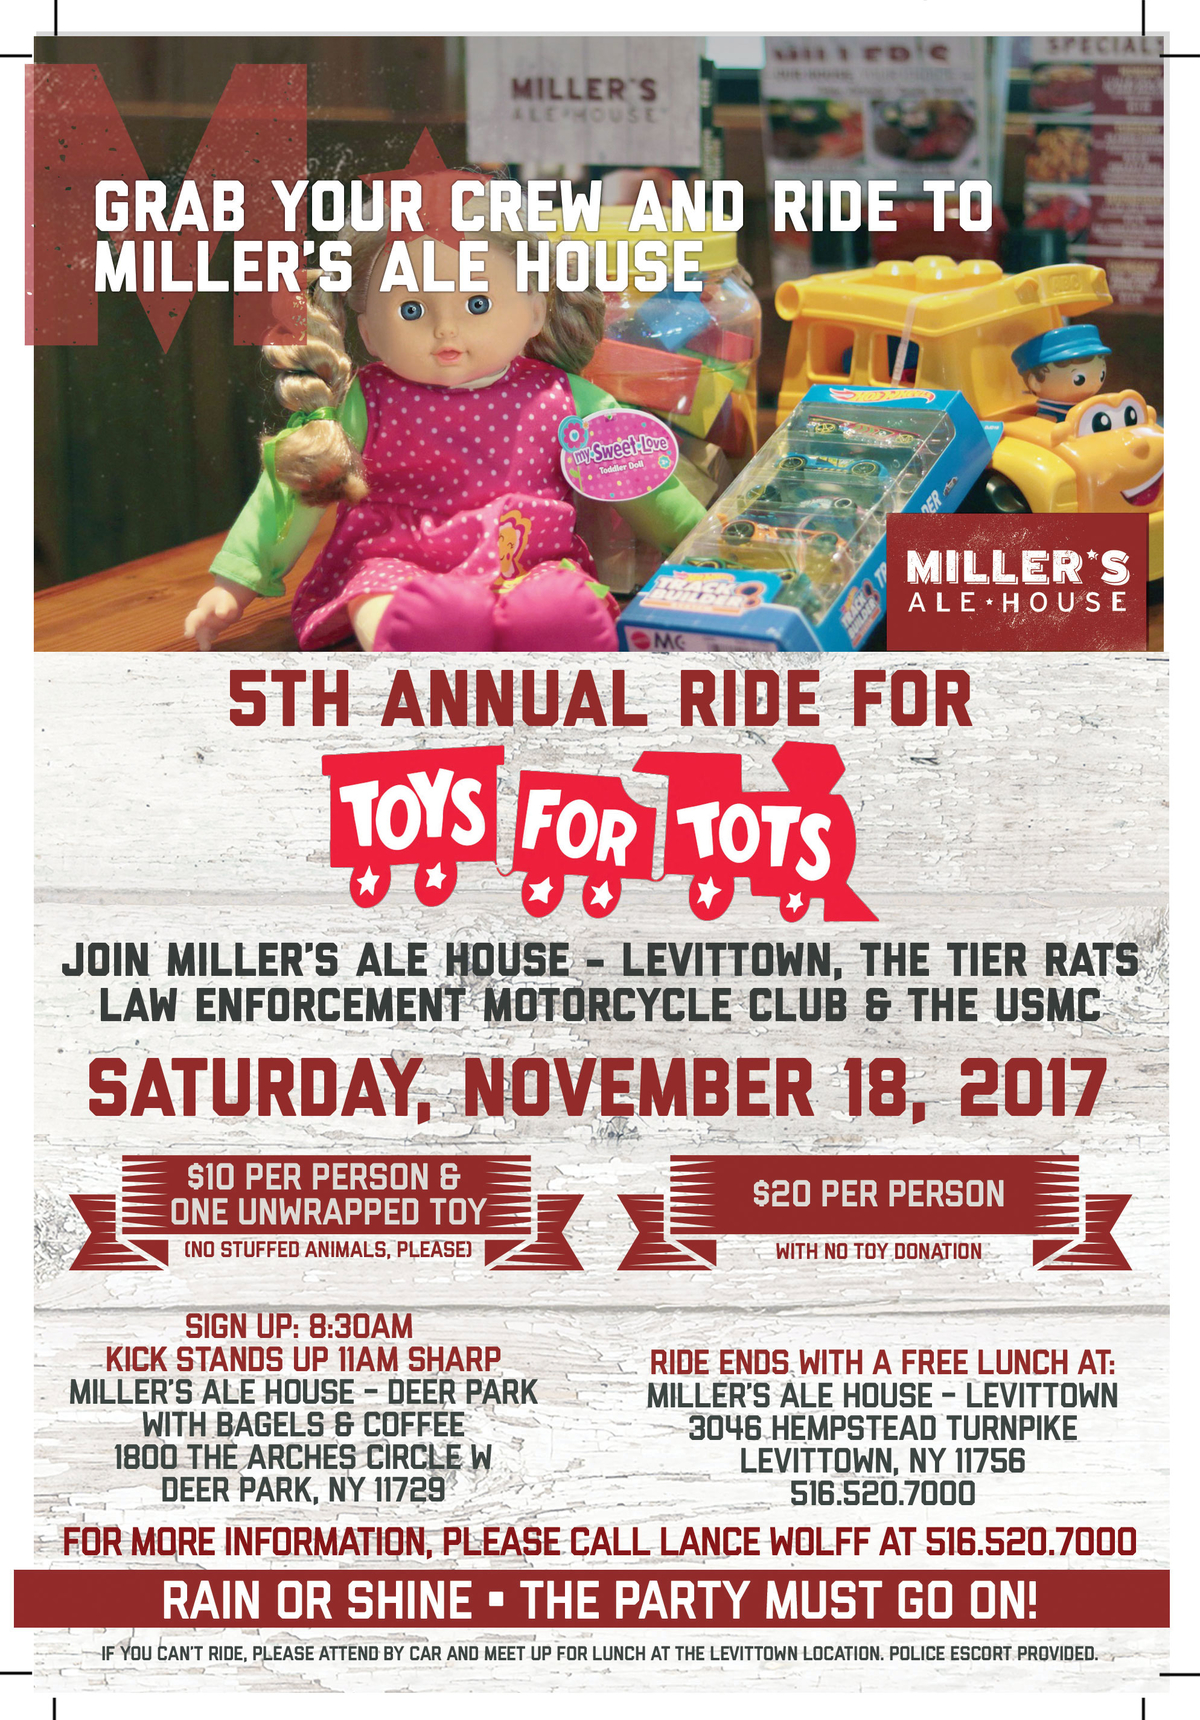 Toys For Tots 2017 Poster : Toys for tots bike run miller s ale house levittown